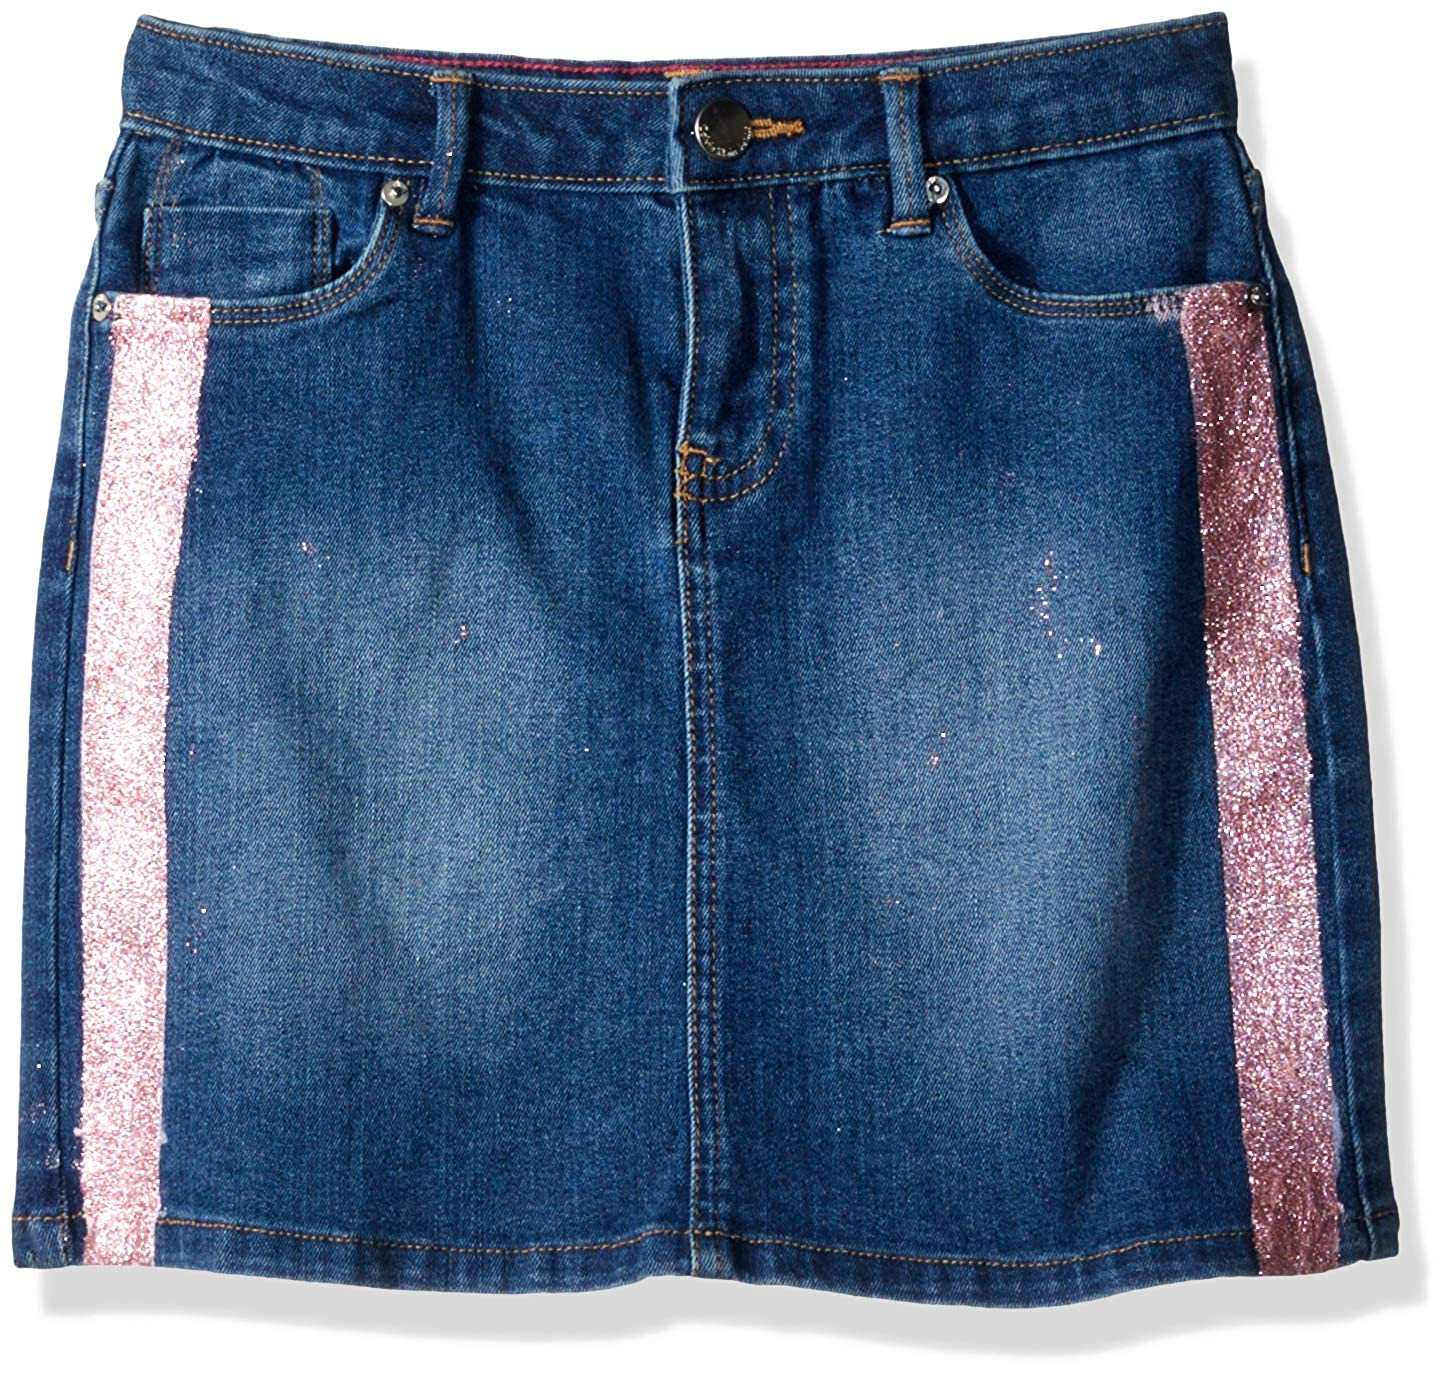 02acc7865a Button closure. Machine Wash Frayed hem gives this denim skirt a more  detailed and dynamic appearance. Stretch denim makes for a soft comfortable  fit